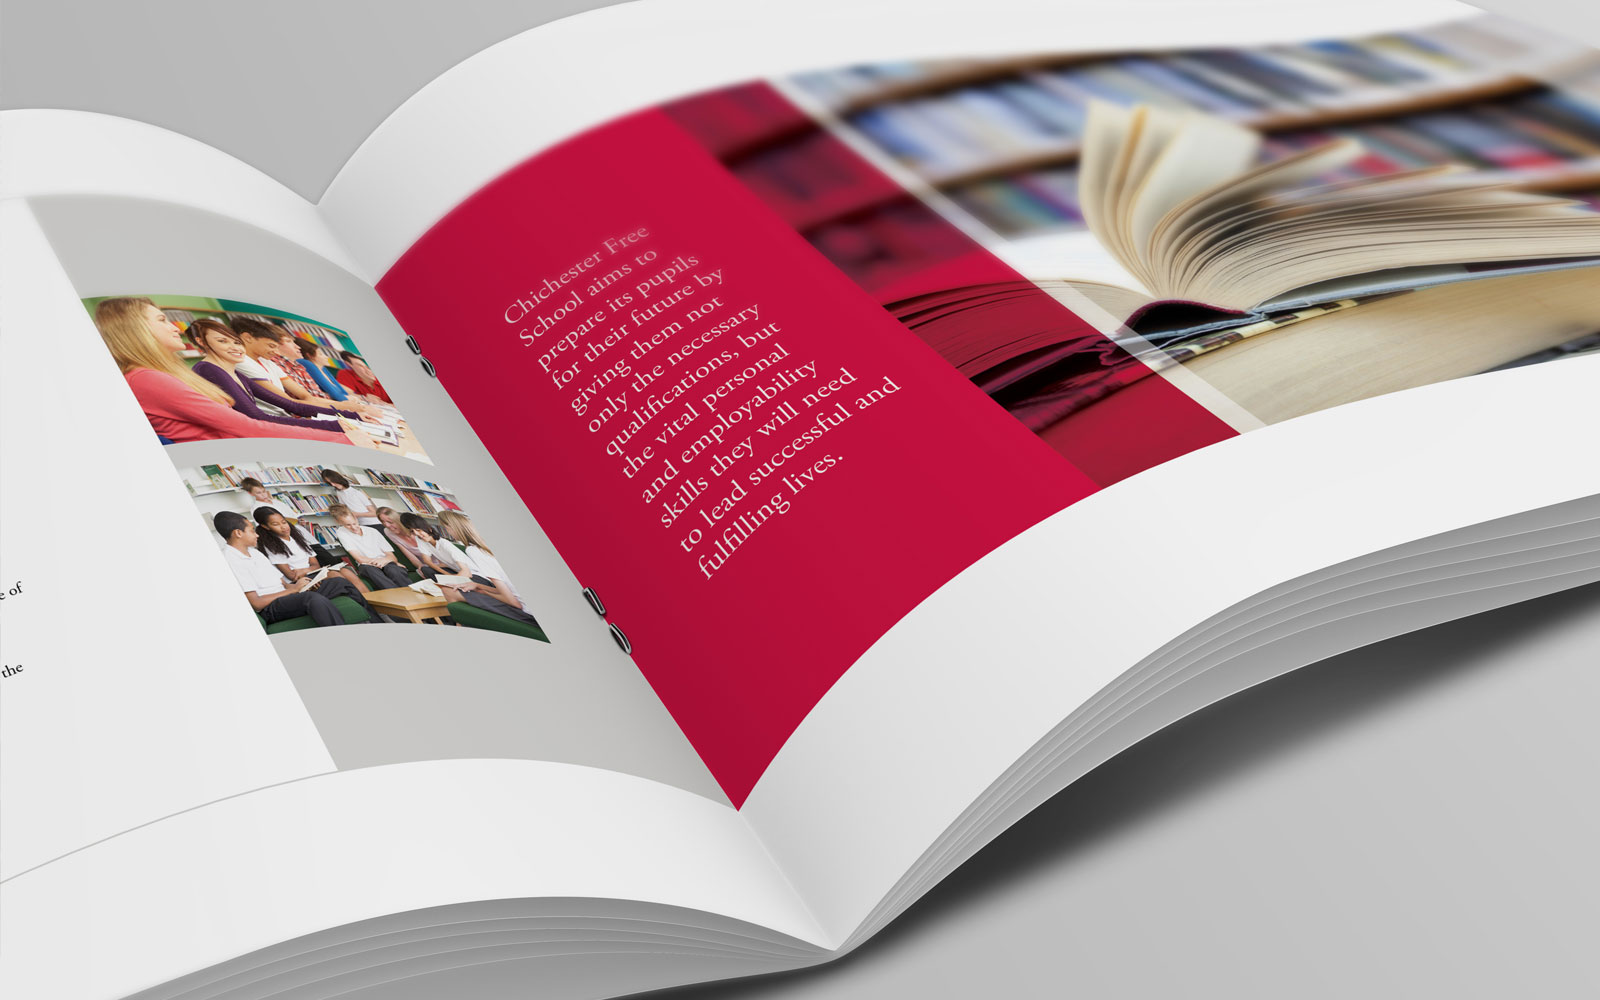 Buzzword designs new prospectus for Chichester Free School